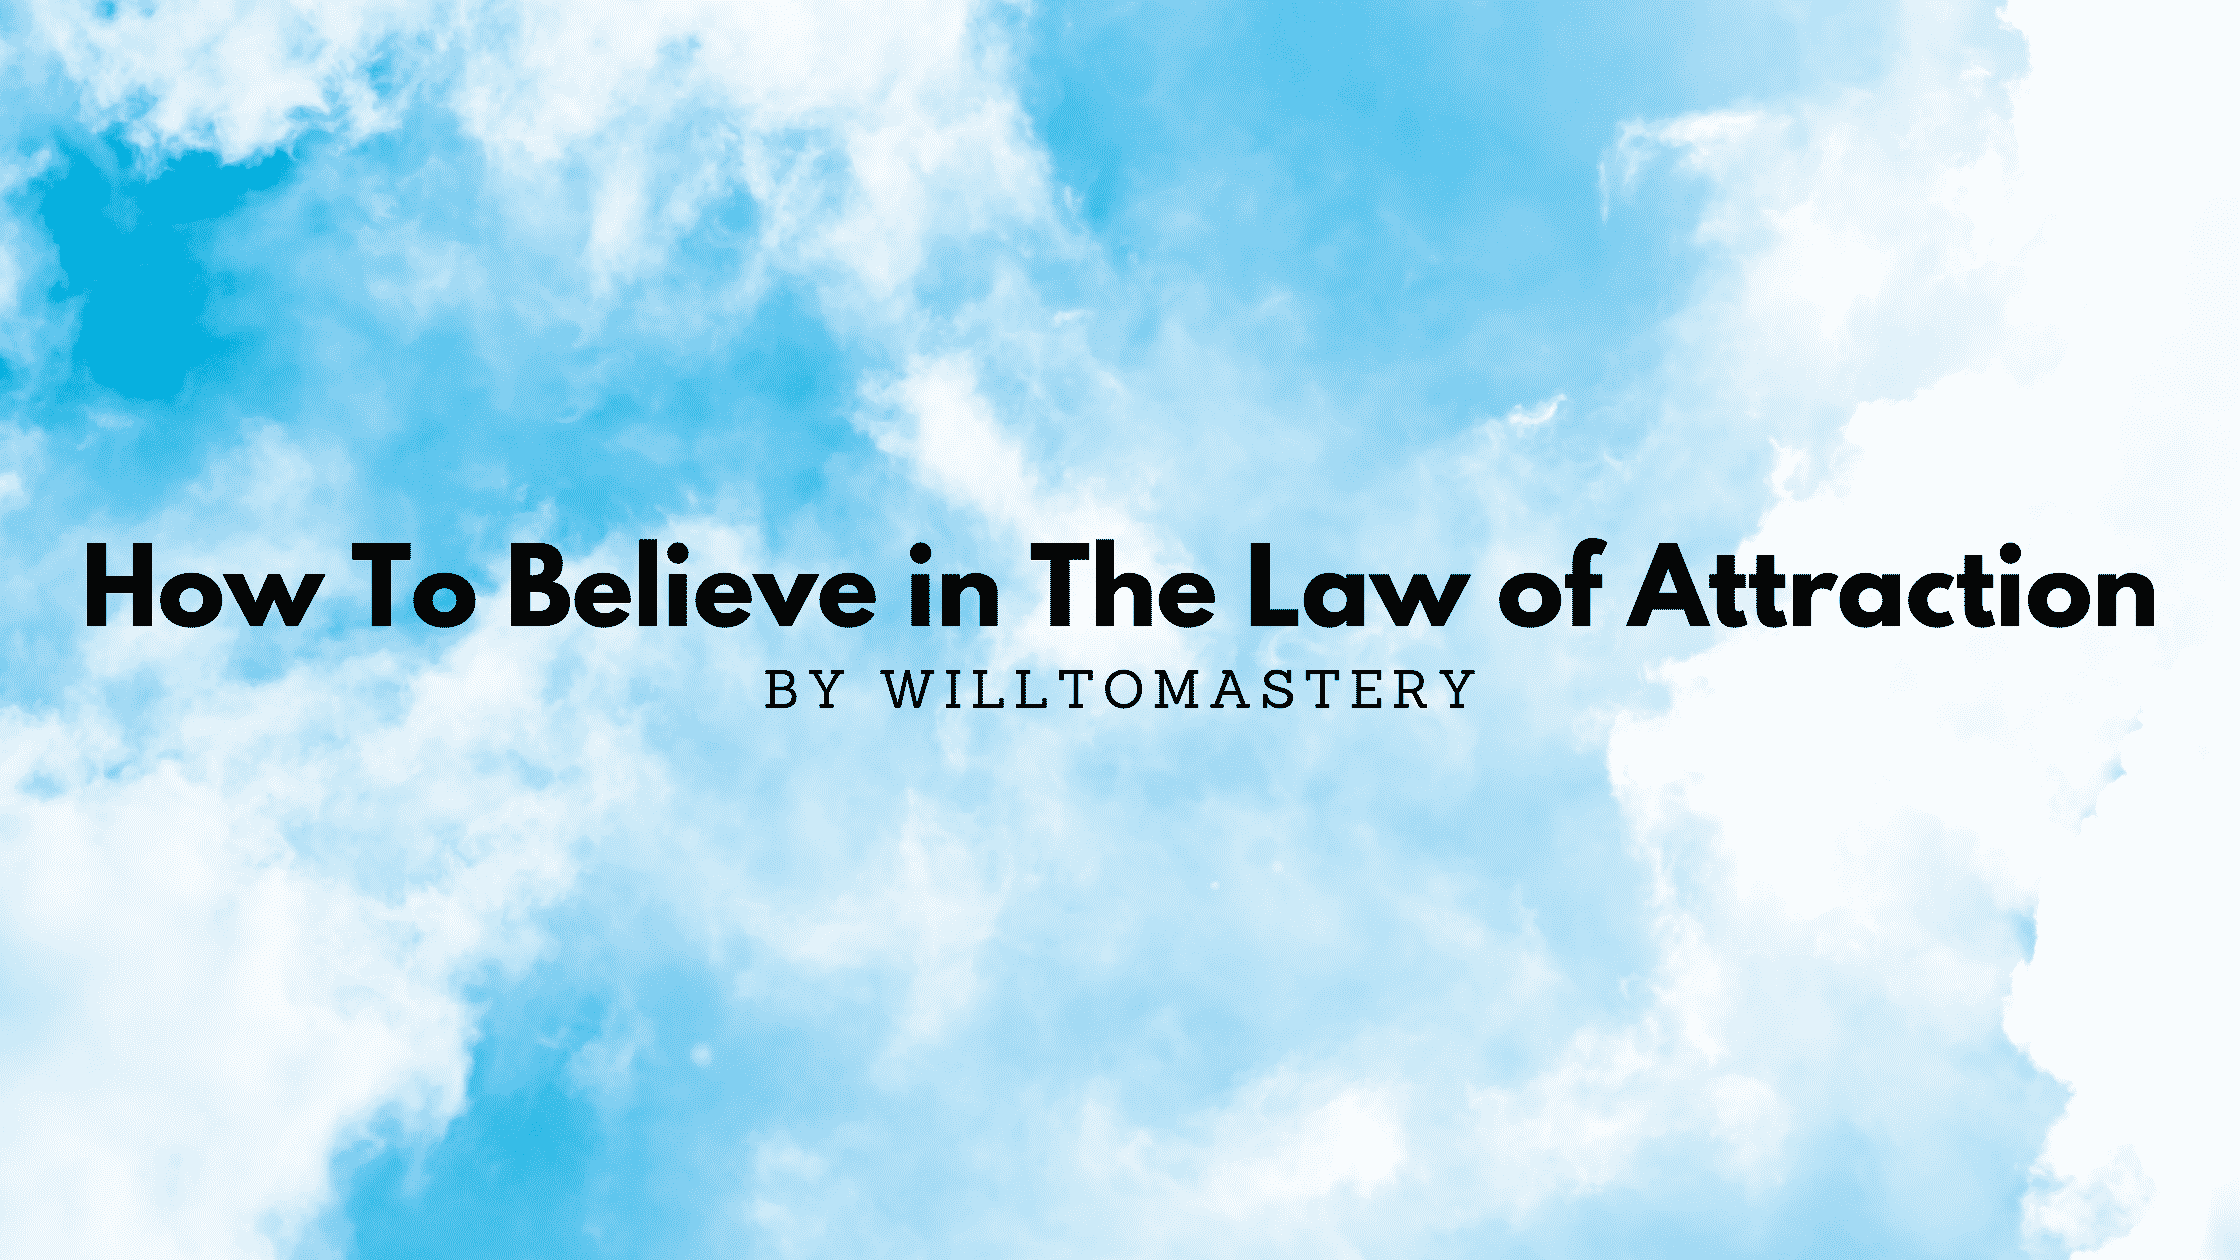 How To Believe in The Law of Attraction